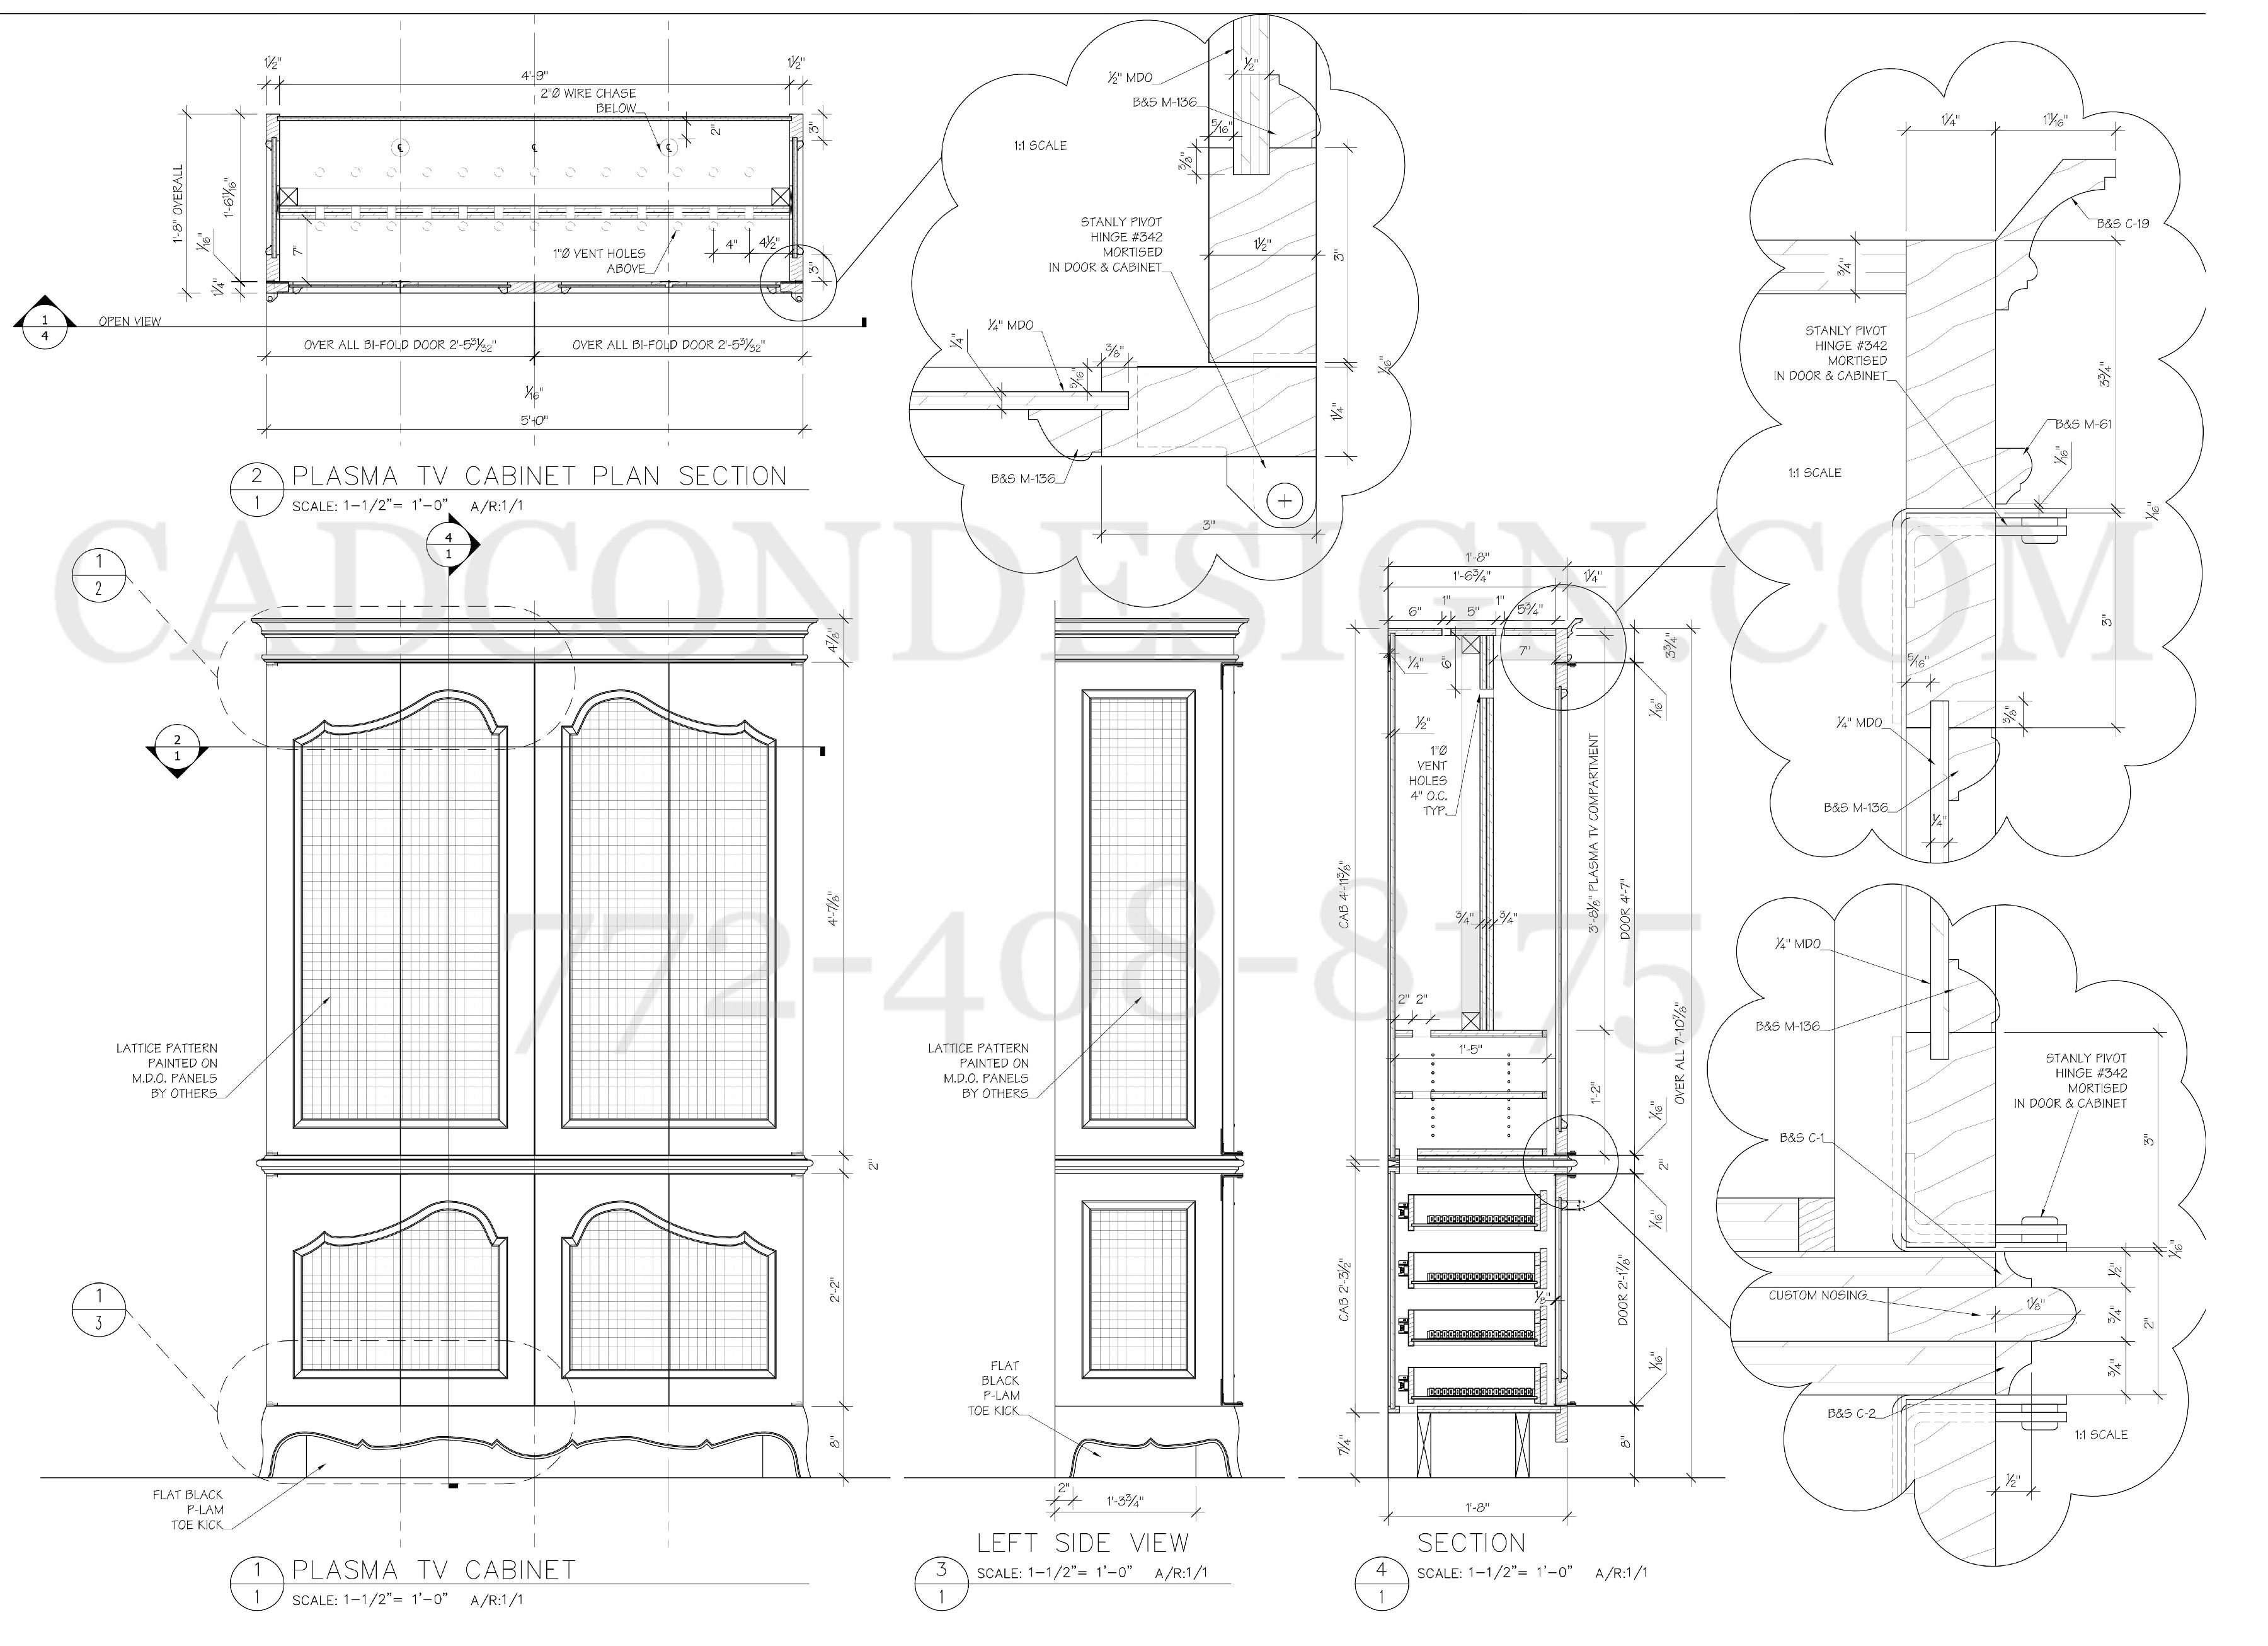 Architectural Drawing Door millwork shop drawings are like an insurance policy. that is